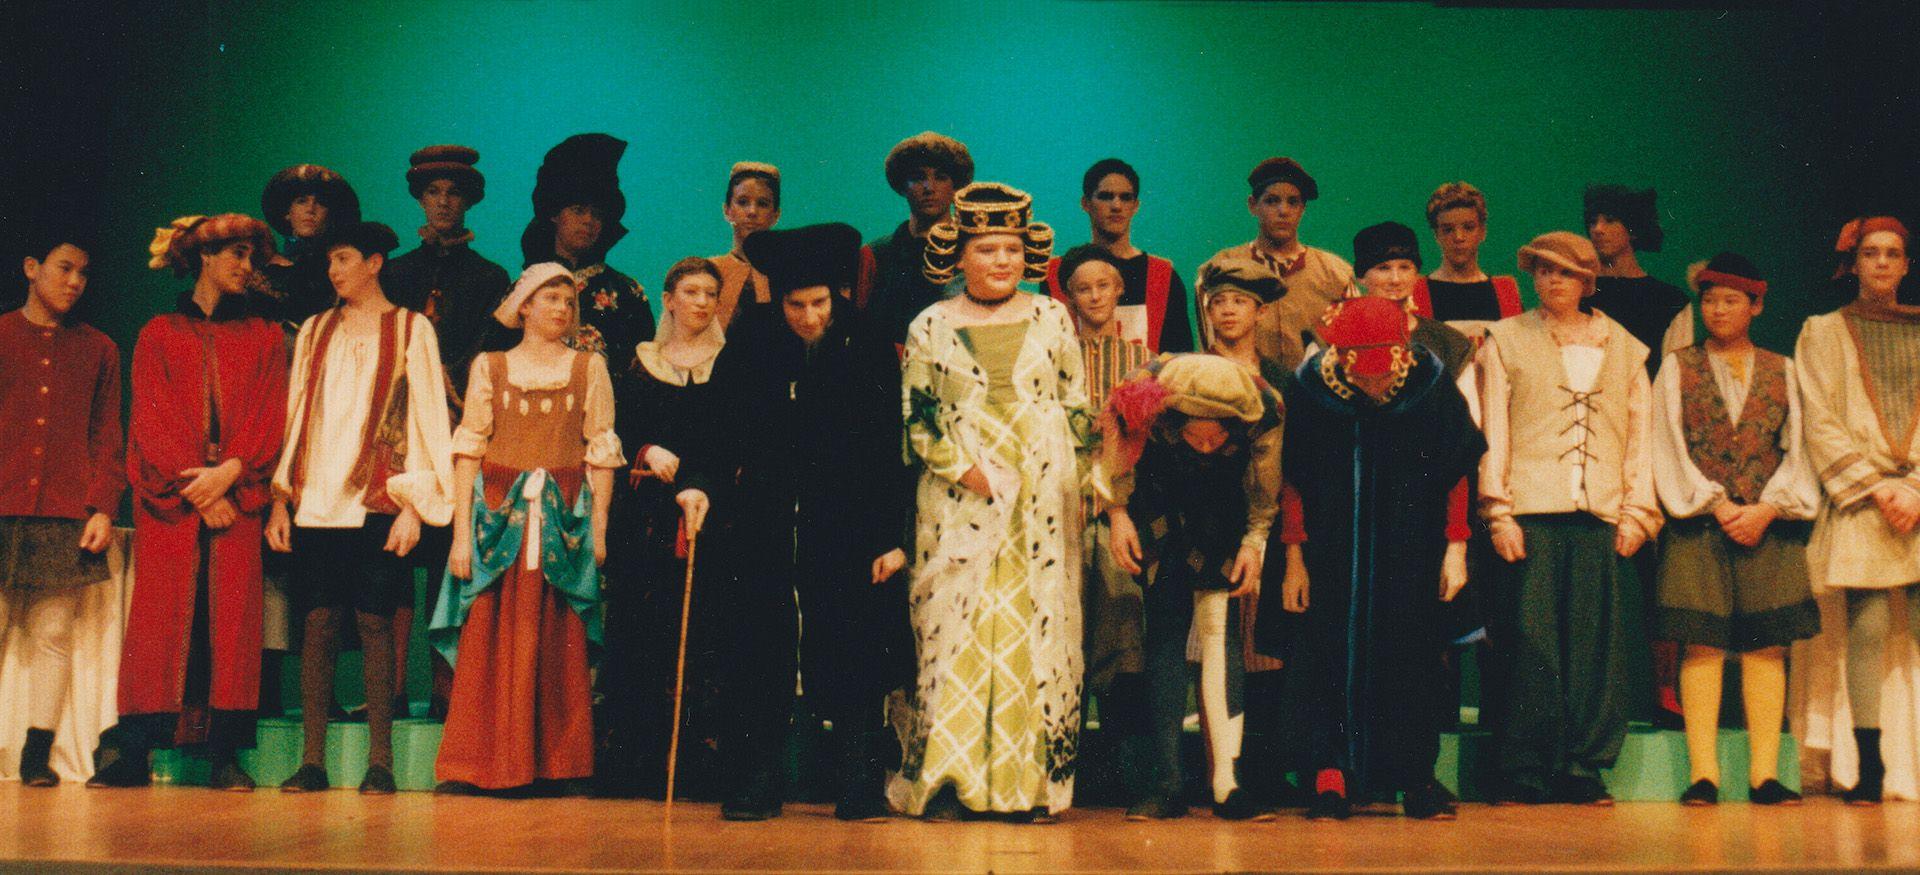 2000, The Taming of the Shrew